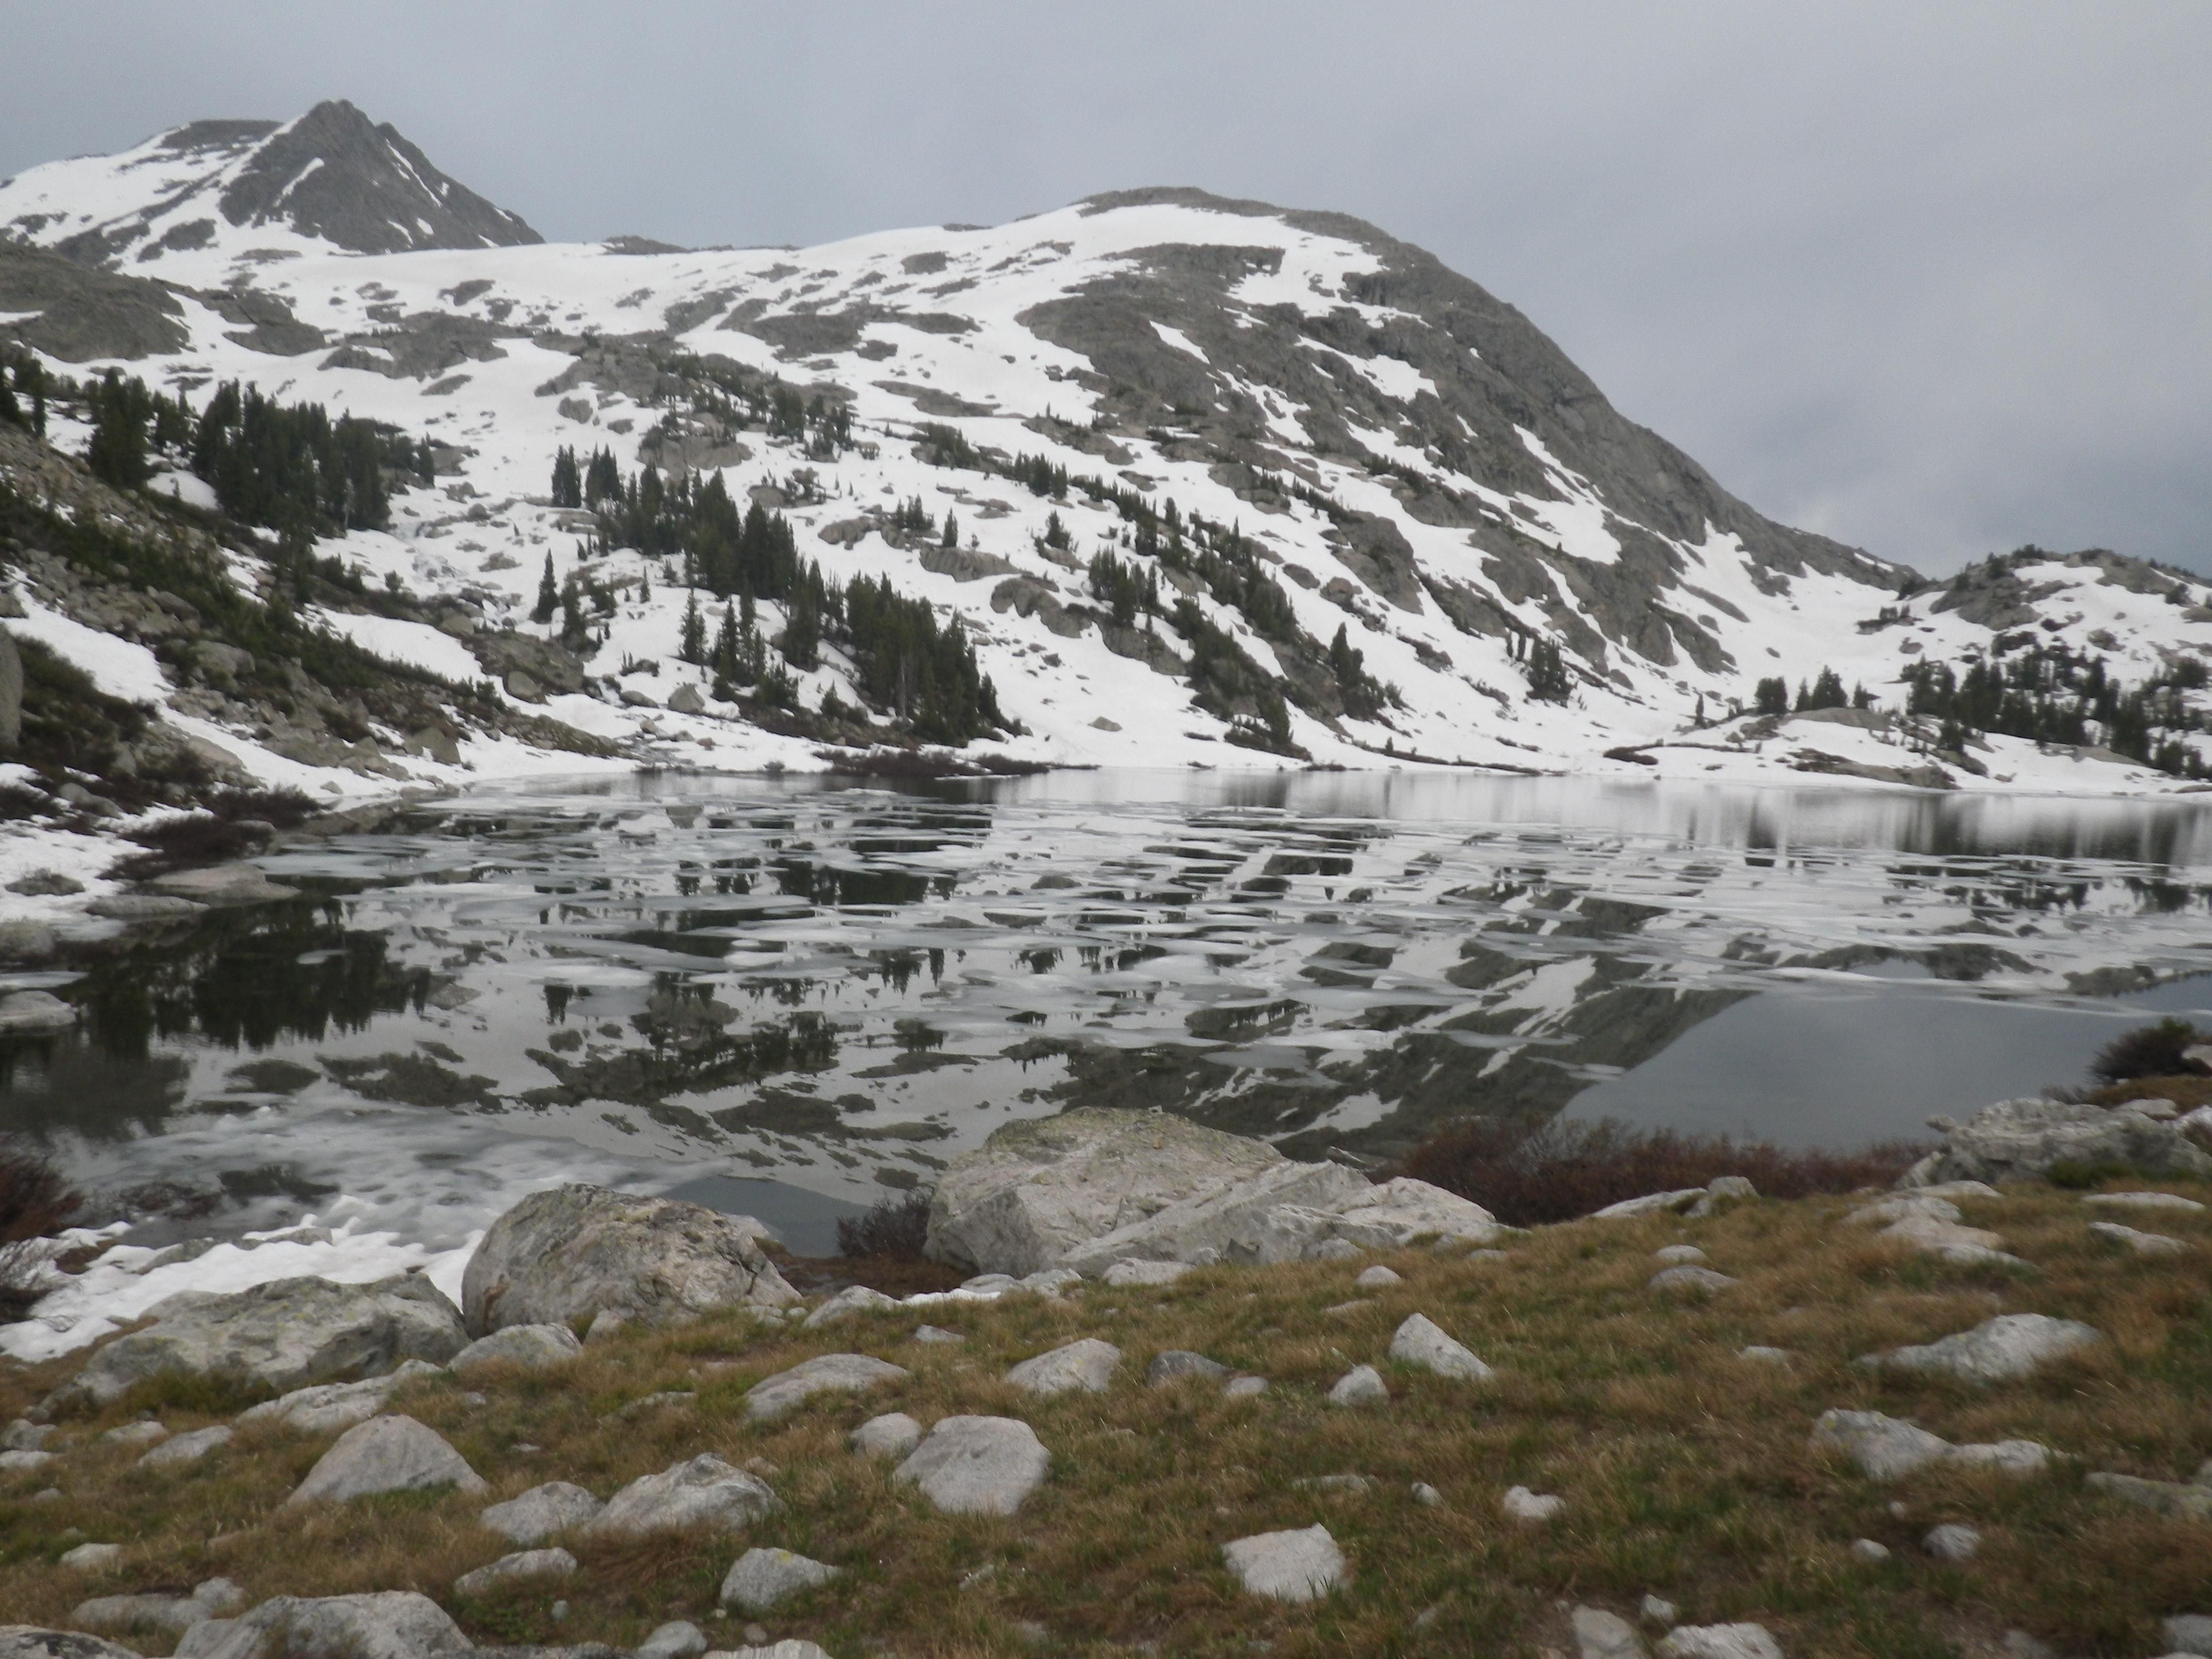 Hill reflecting off an icy lake, Northern Wind River Range, Wyoming. [4288 × 3216] - Nature and Science